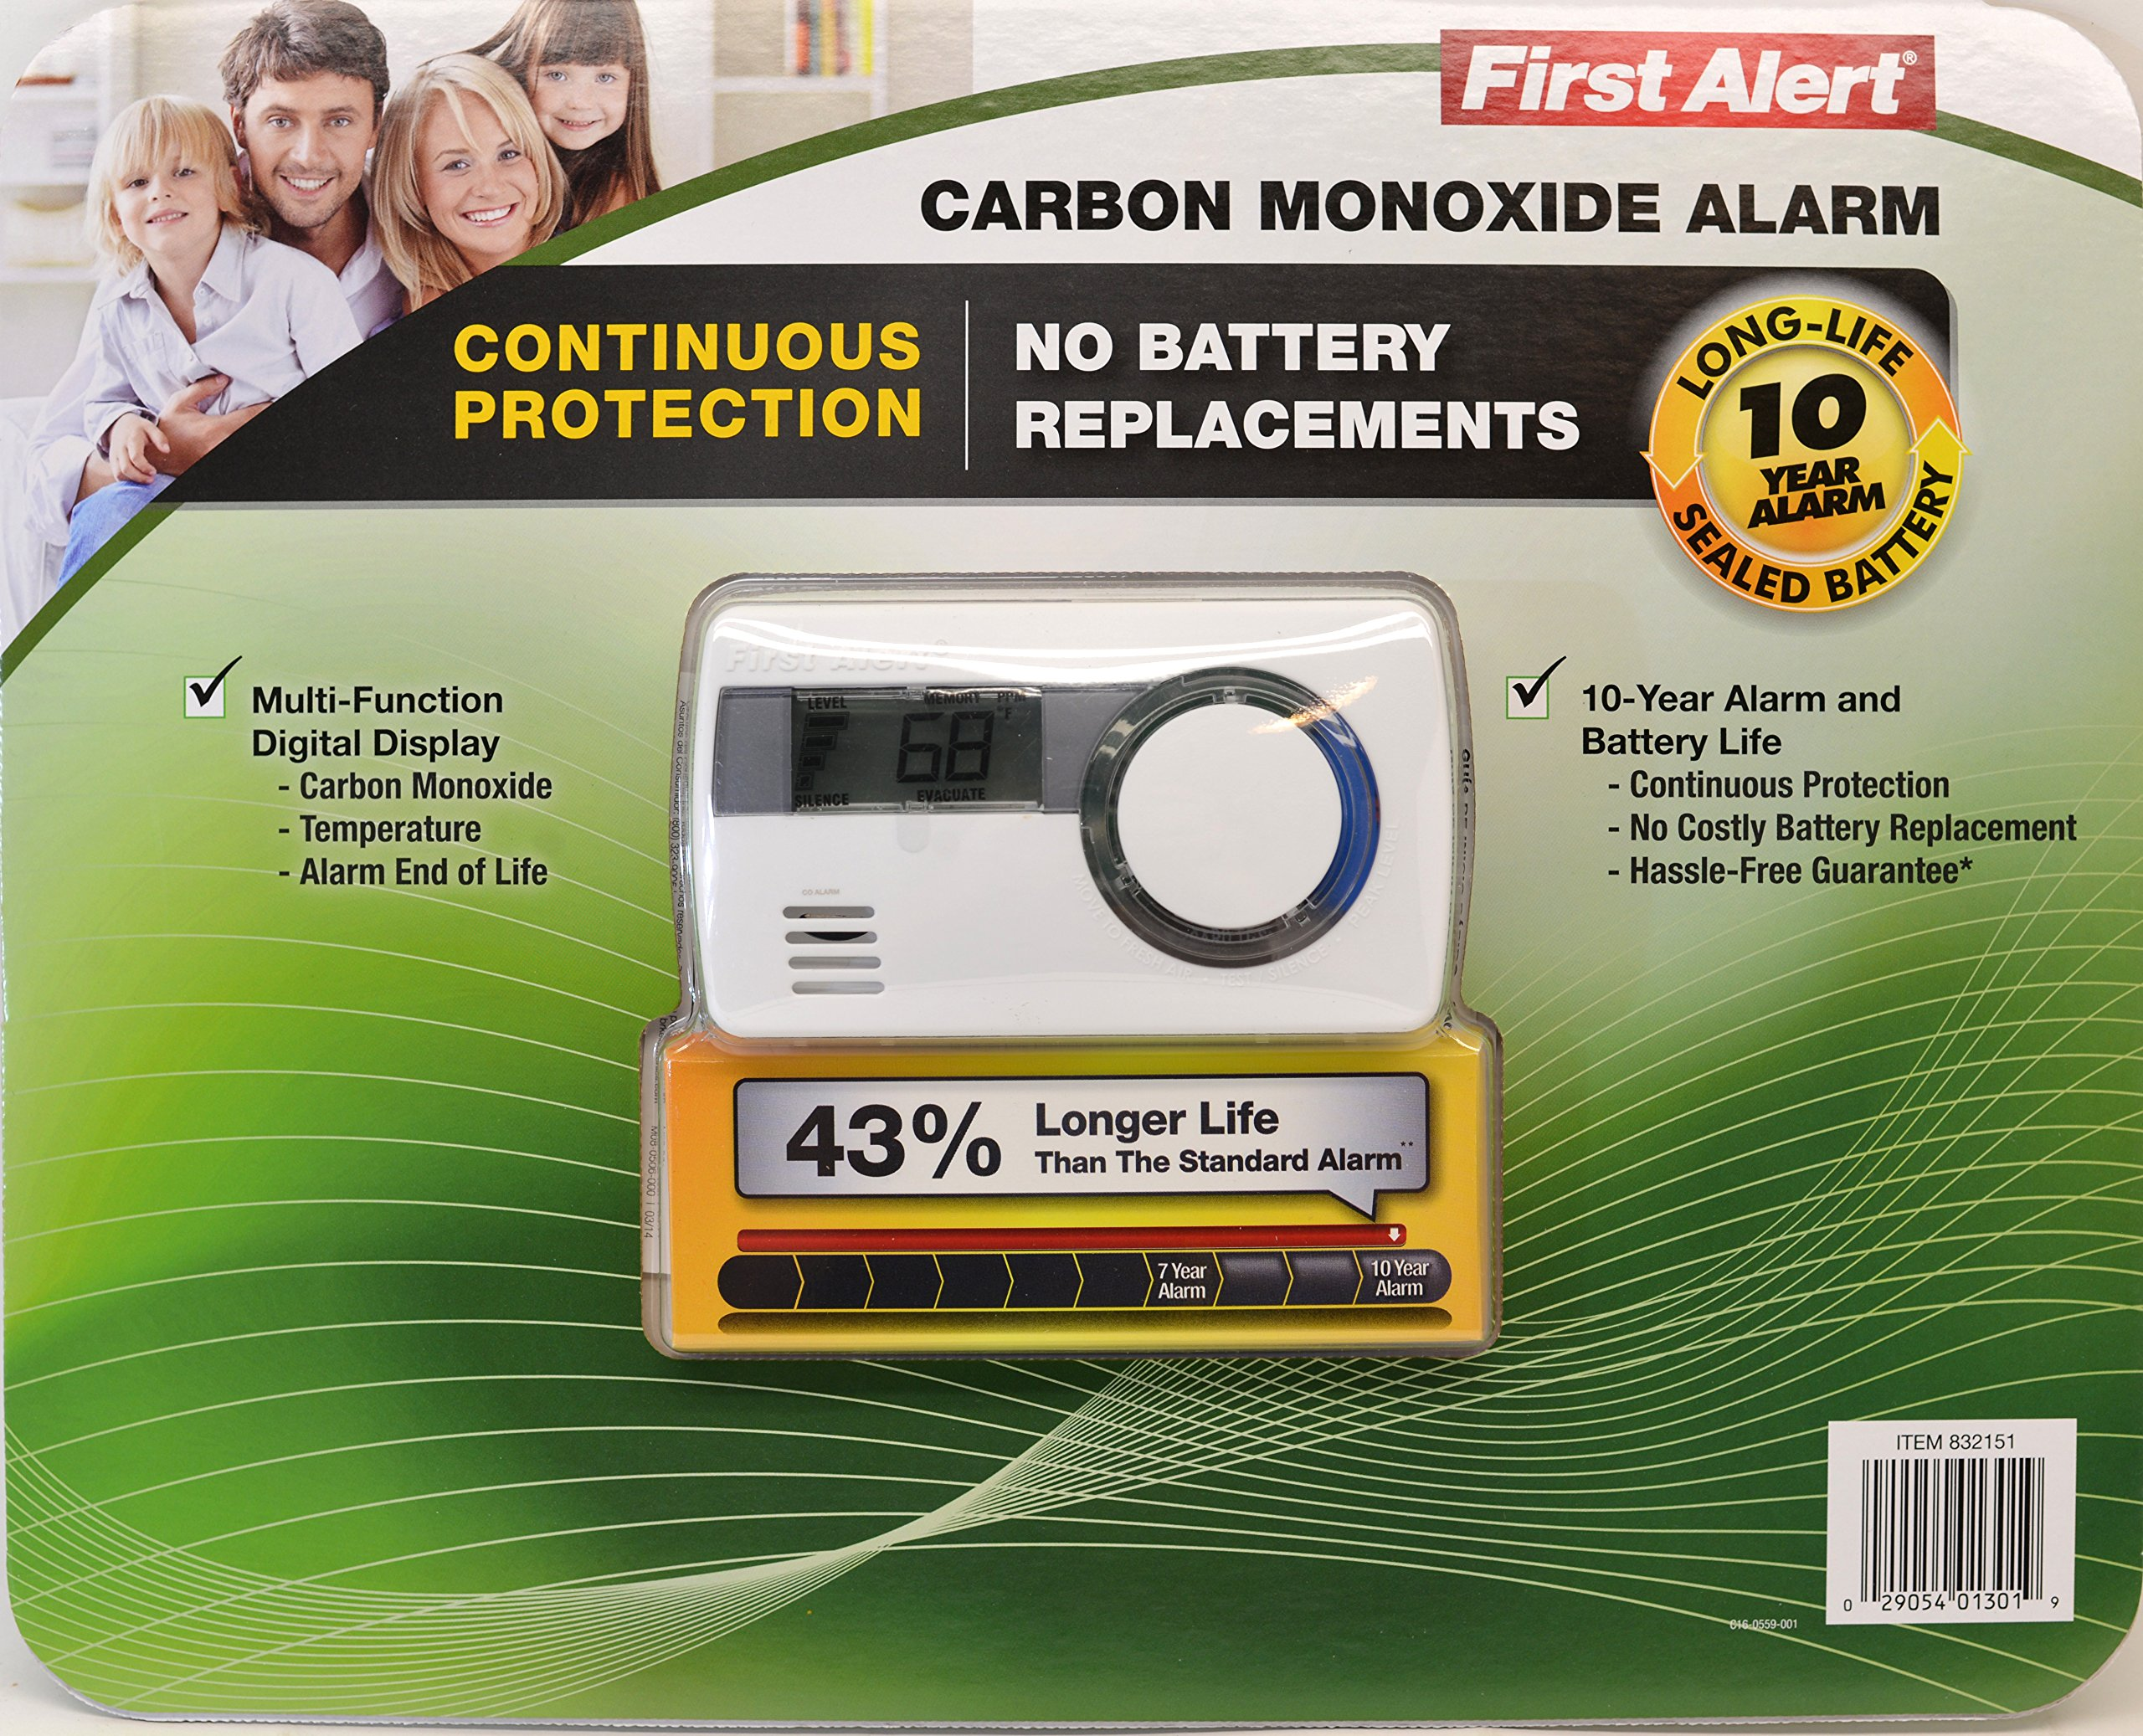 First Alert Carbon Monoxide Alar Long life 10 Year Alarm with Temperature by First Alert (Image #1)